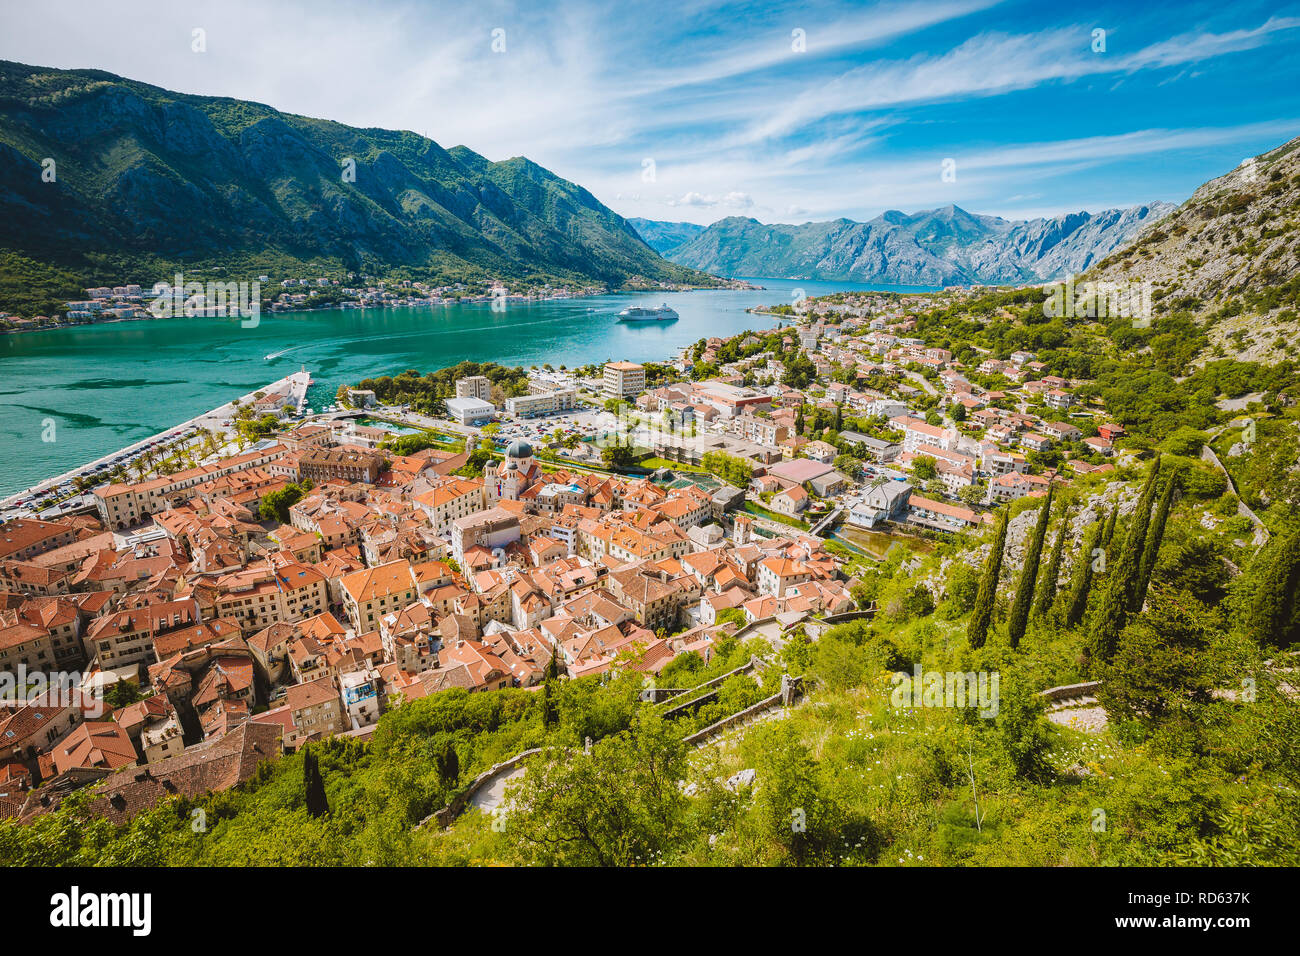 Scenic panoramic view of the historic town of Kotor with famous Bay of Kotor on a beautiful sunny day with blue sky and clouds, Montenegro, Balkans - Stock Image